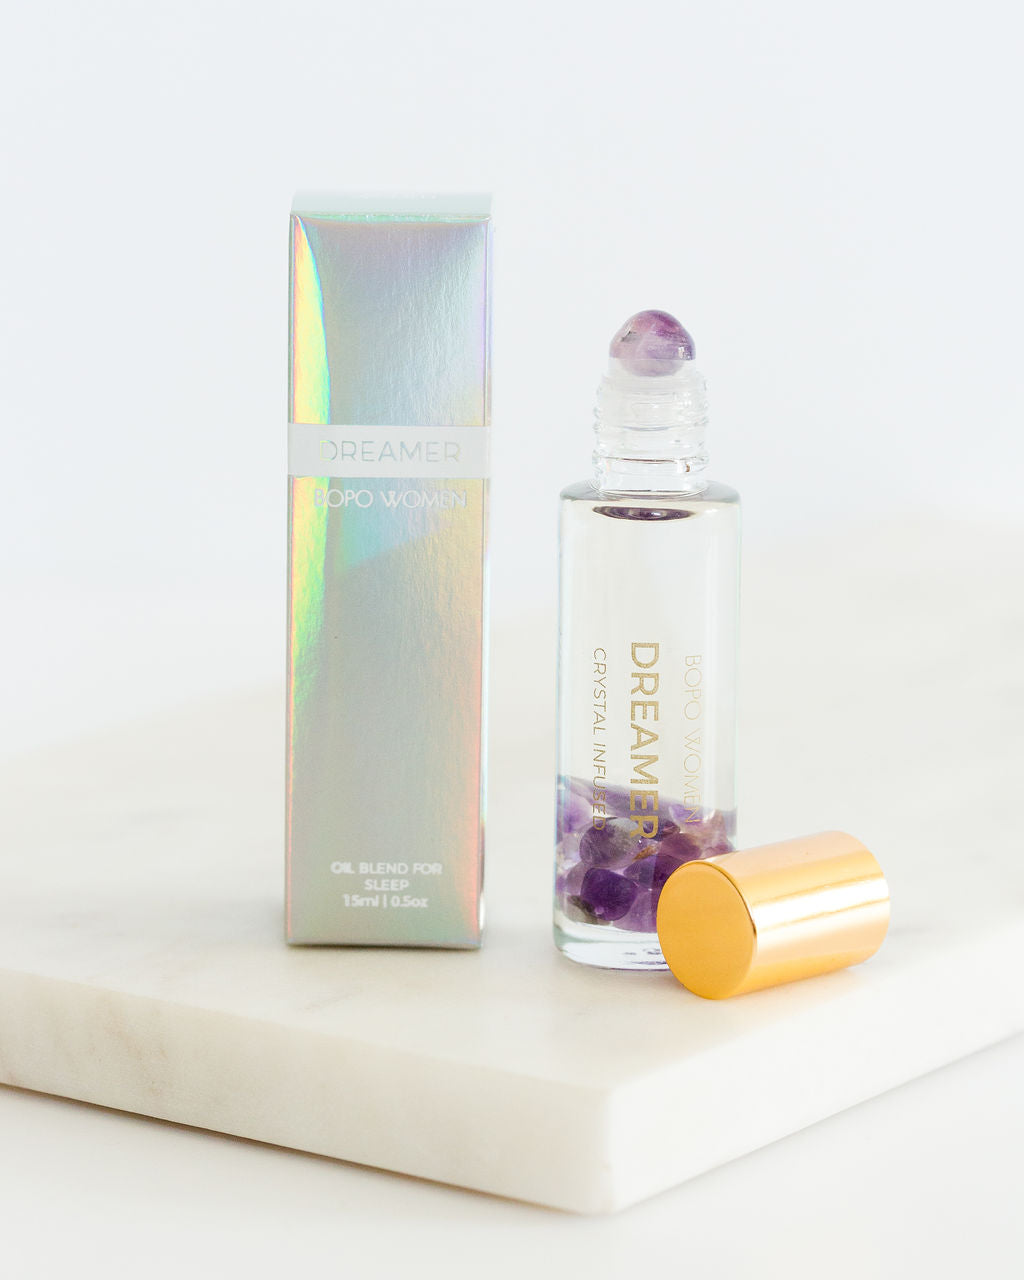 Bopo Women-Bopo Women Dreamer Crystal Perfume Roller-Mott and Mulberry